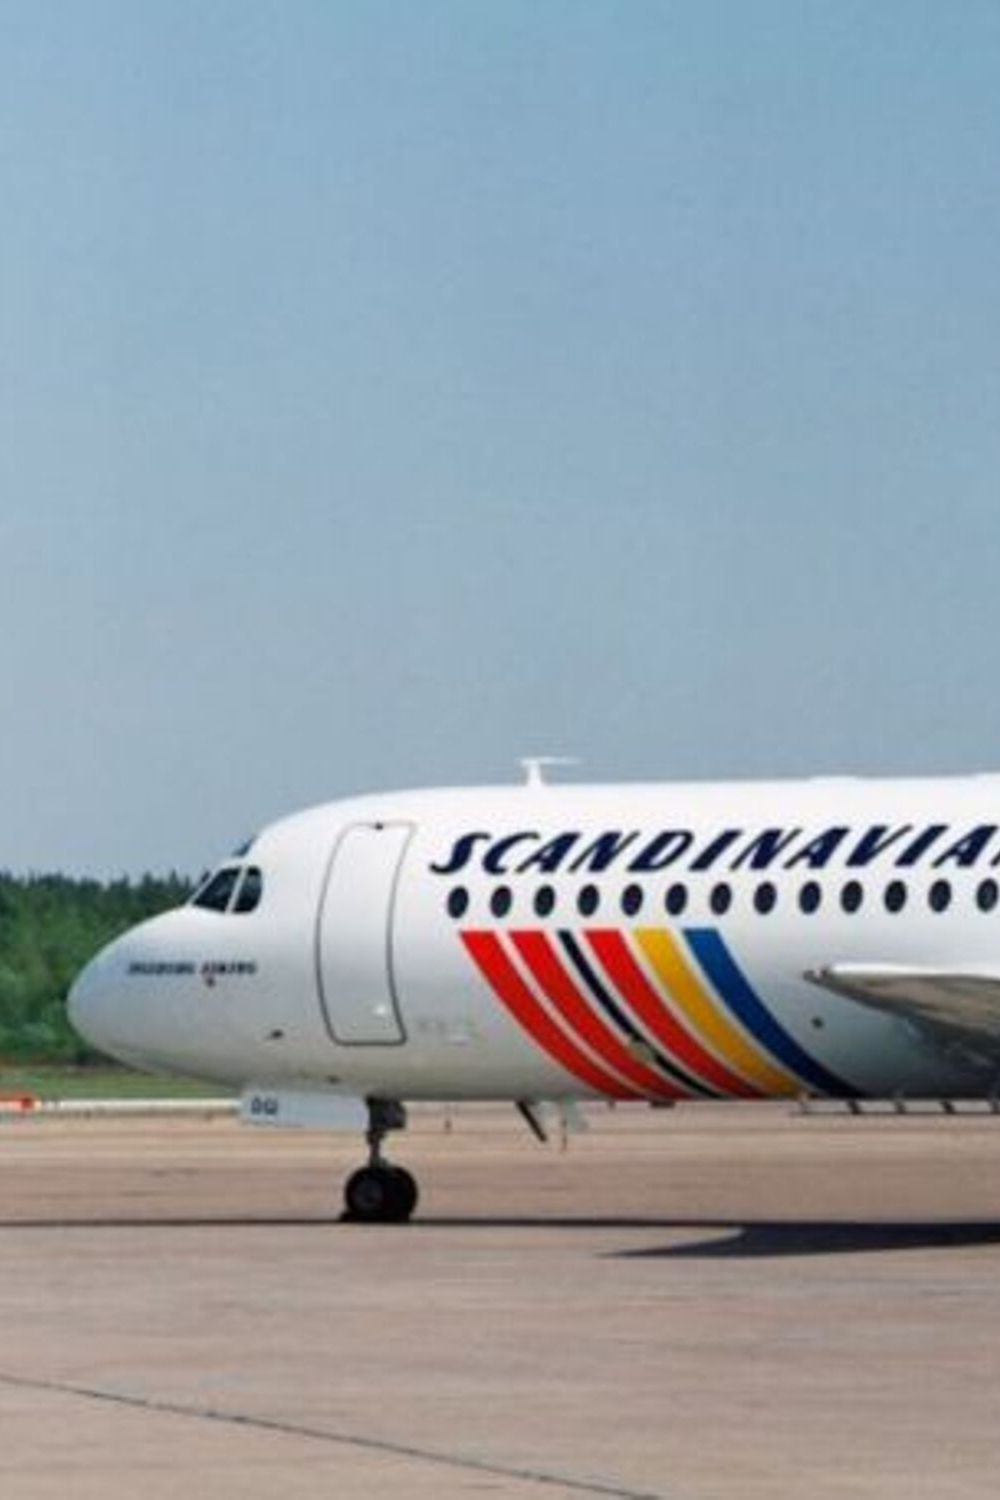 Sas Scandinavian Airlines Livery History Since 1946 Captainjetson Air Travel Tips Airlines Best Airlines